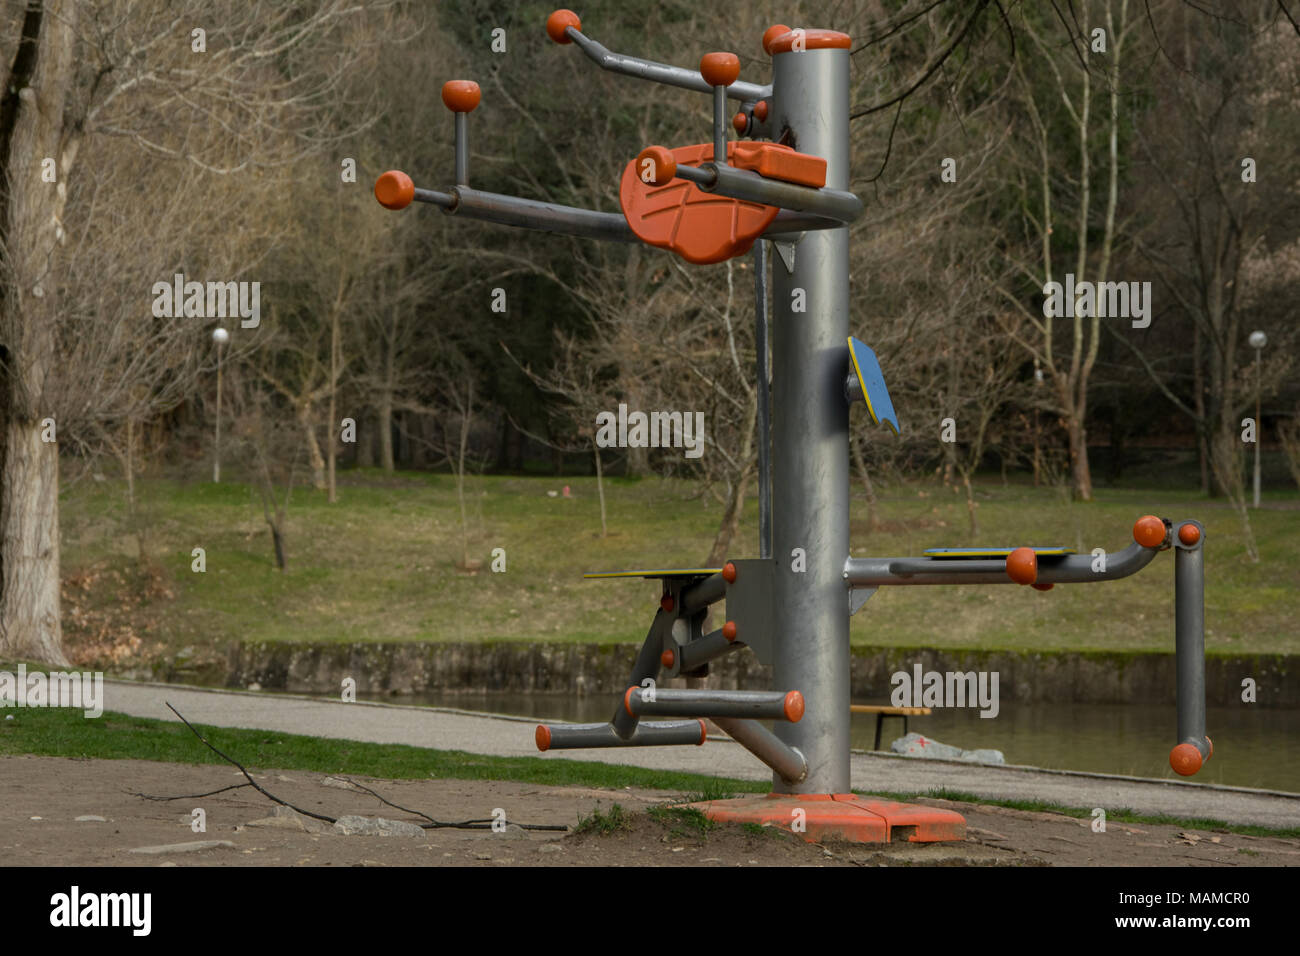 Public fitness equipment in the park, healthy lifestyle concept - Stock Image